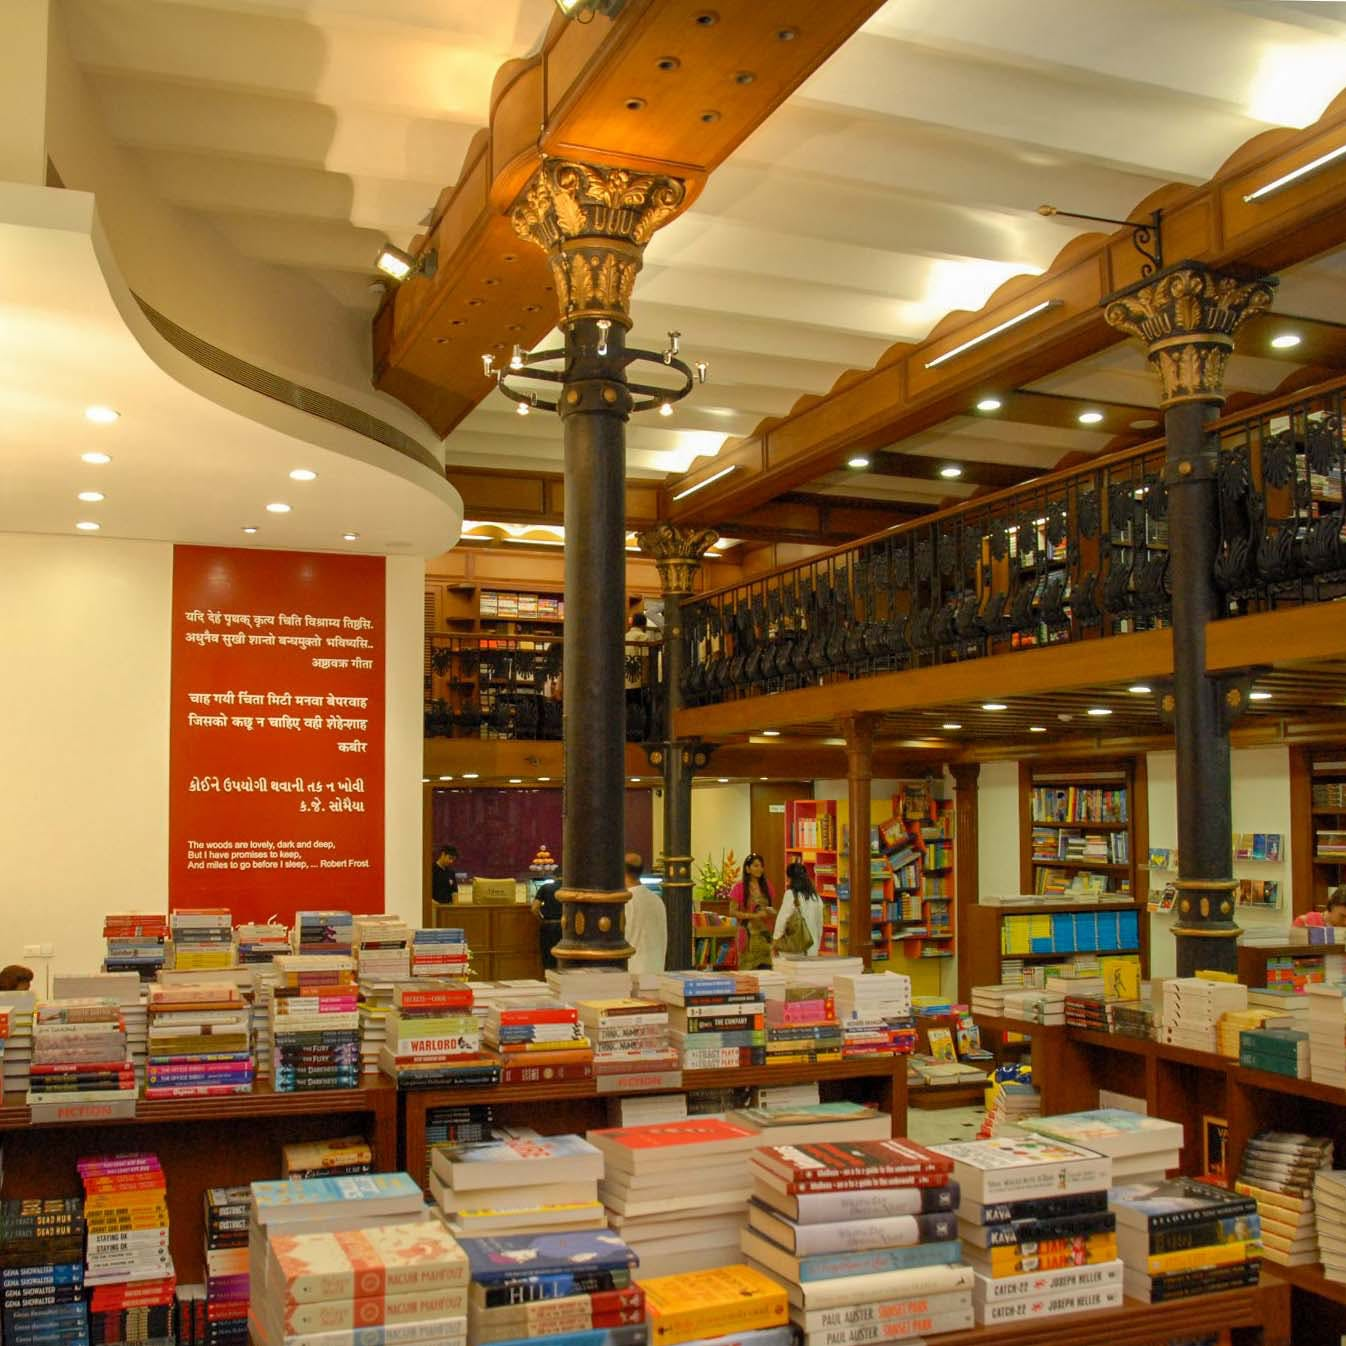 Bookselling,Building,Retail,Book,Public library,Lighting,Publication,Ceiling,Outlet store,Interior design